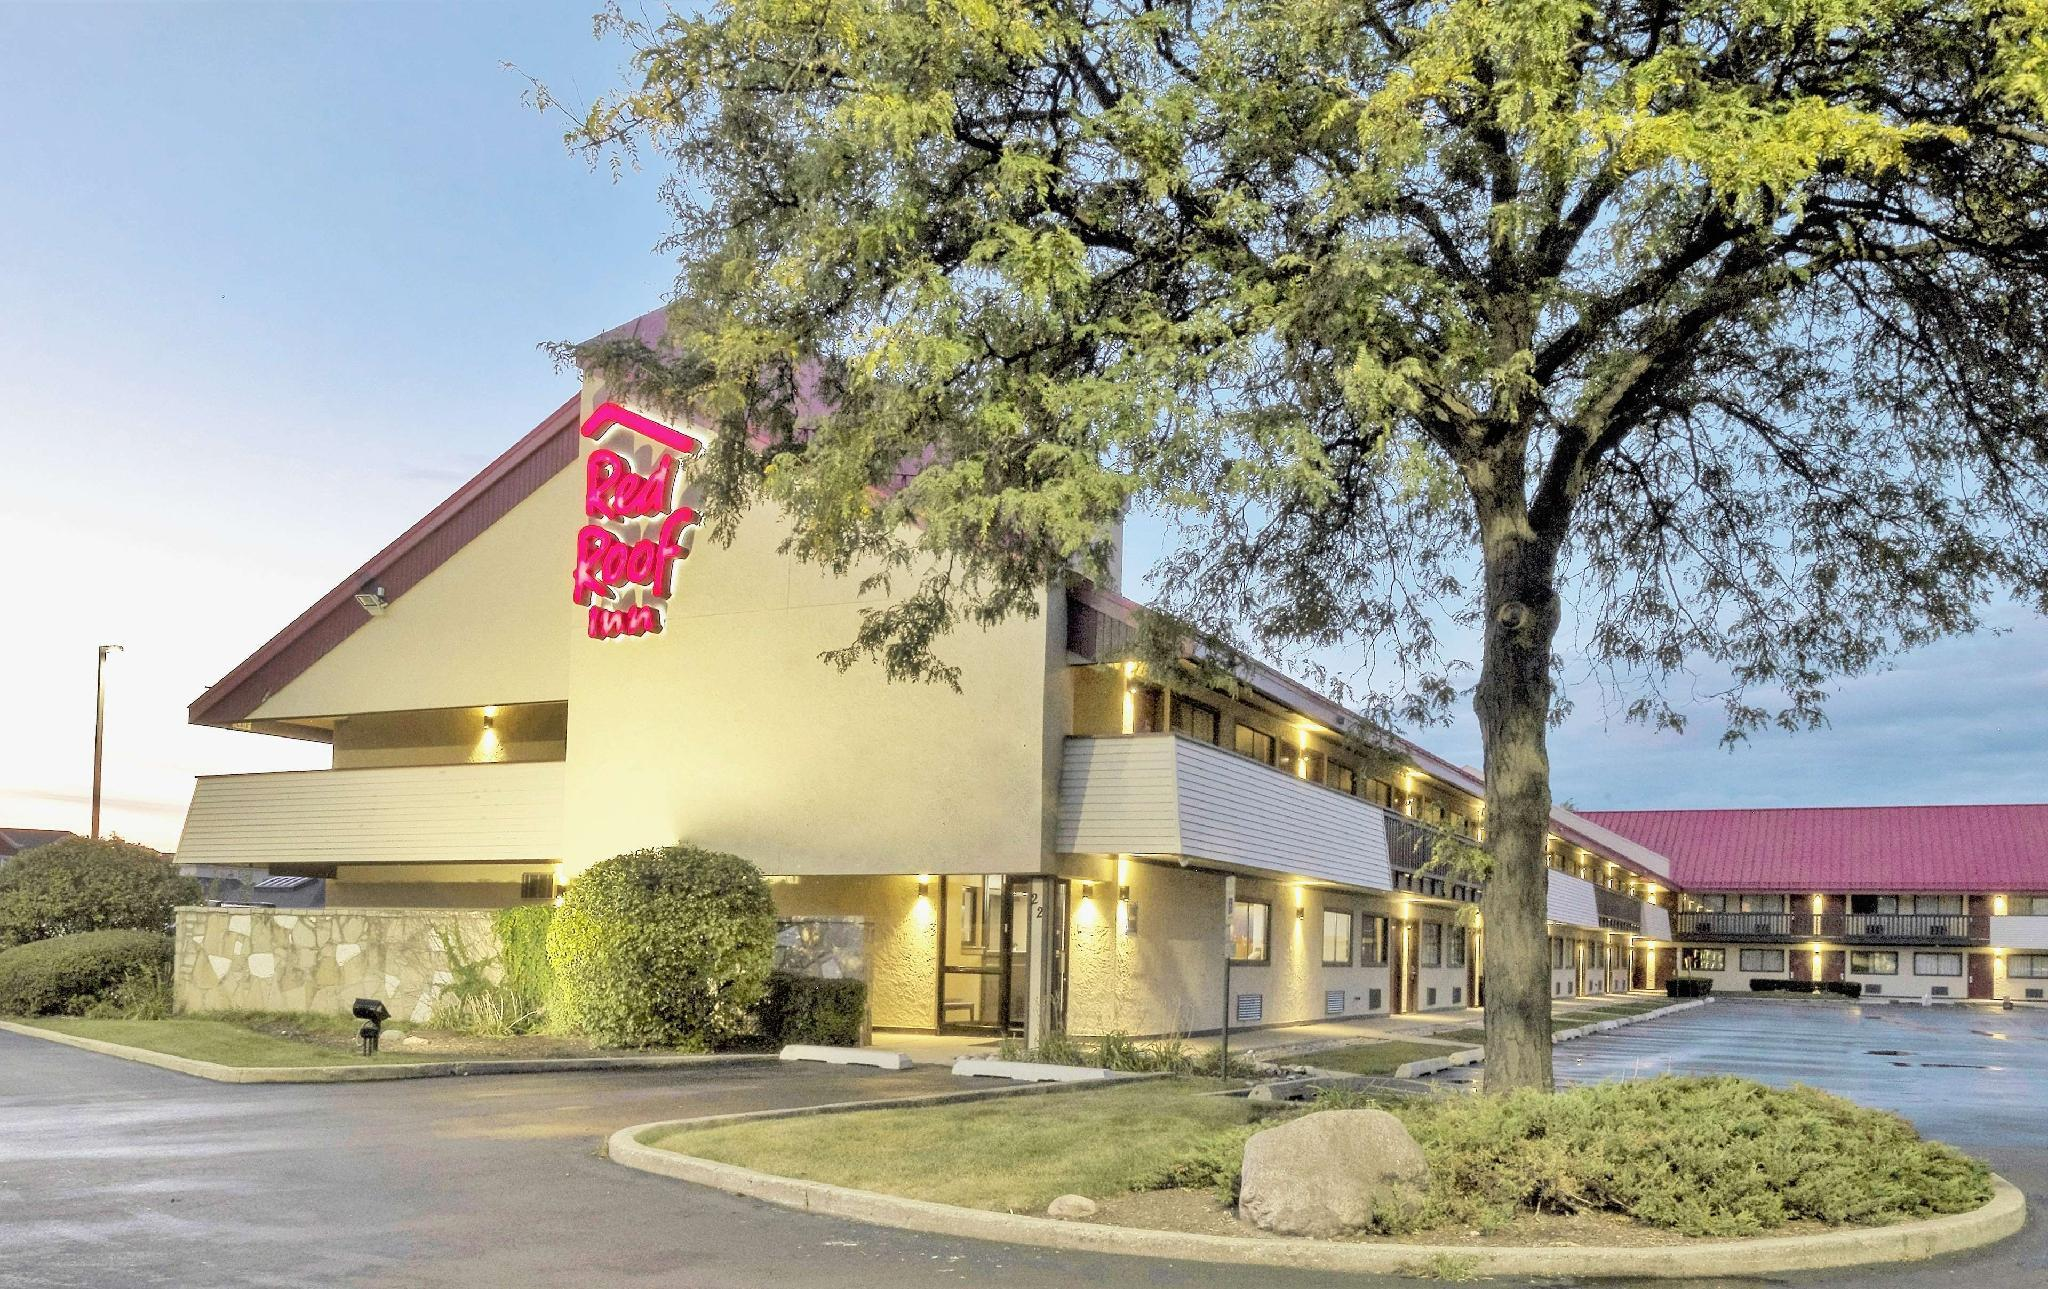 Red Roof Inn Chicago O'Hare Airport  Arlington Hts